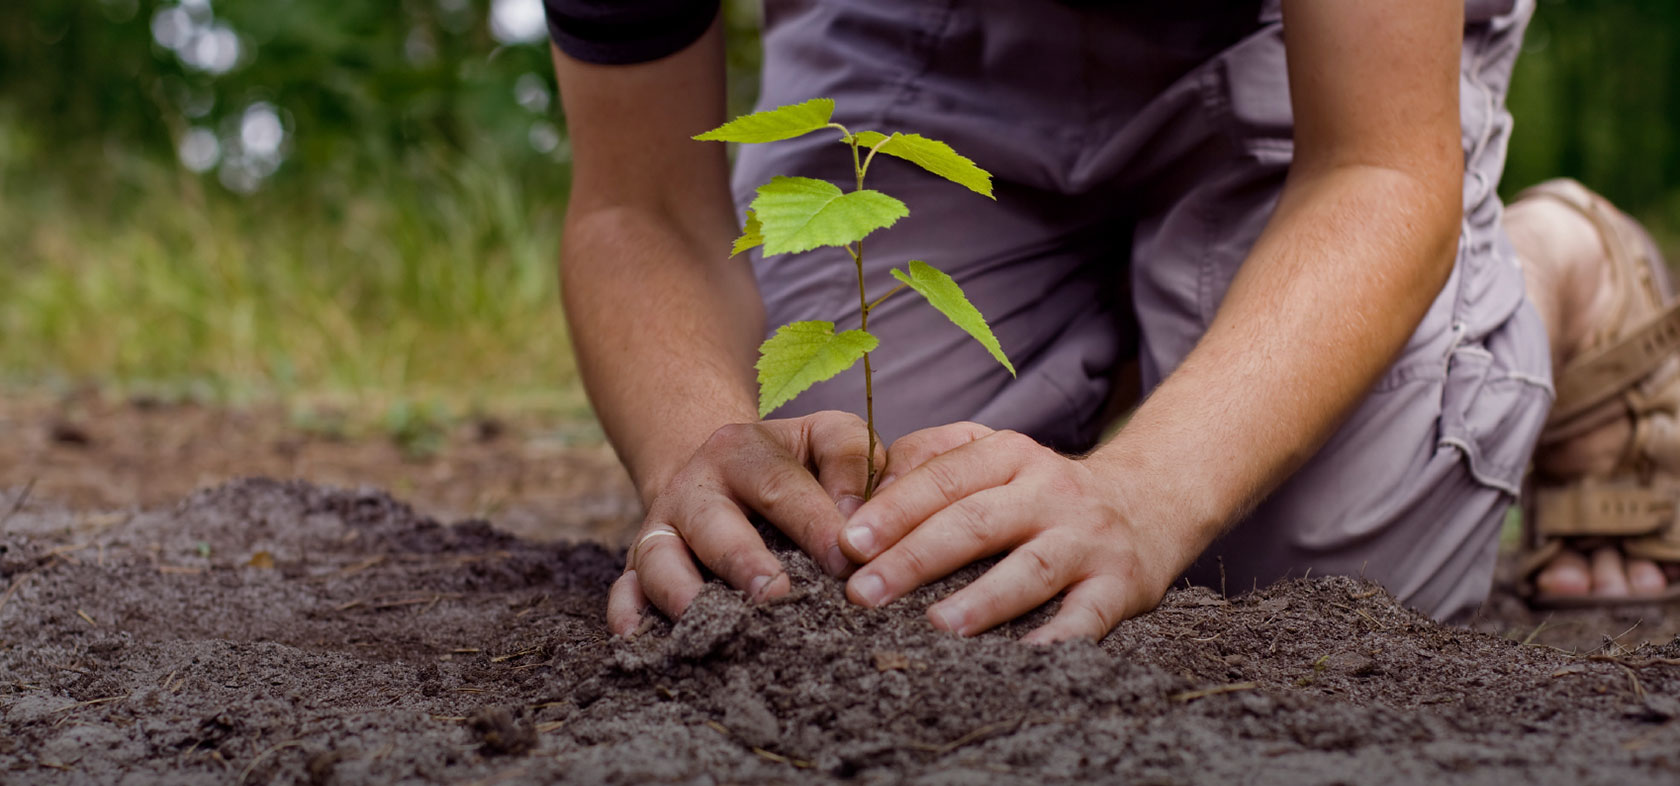 Importance of Gardening in Our life